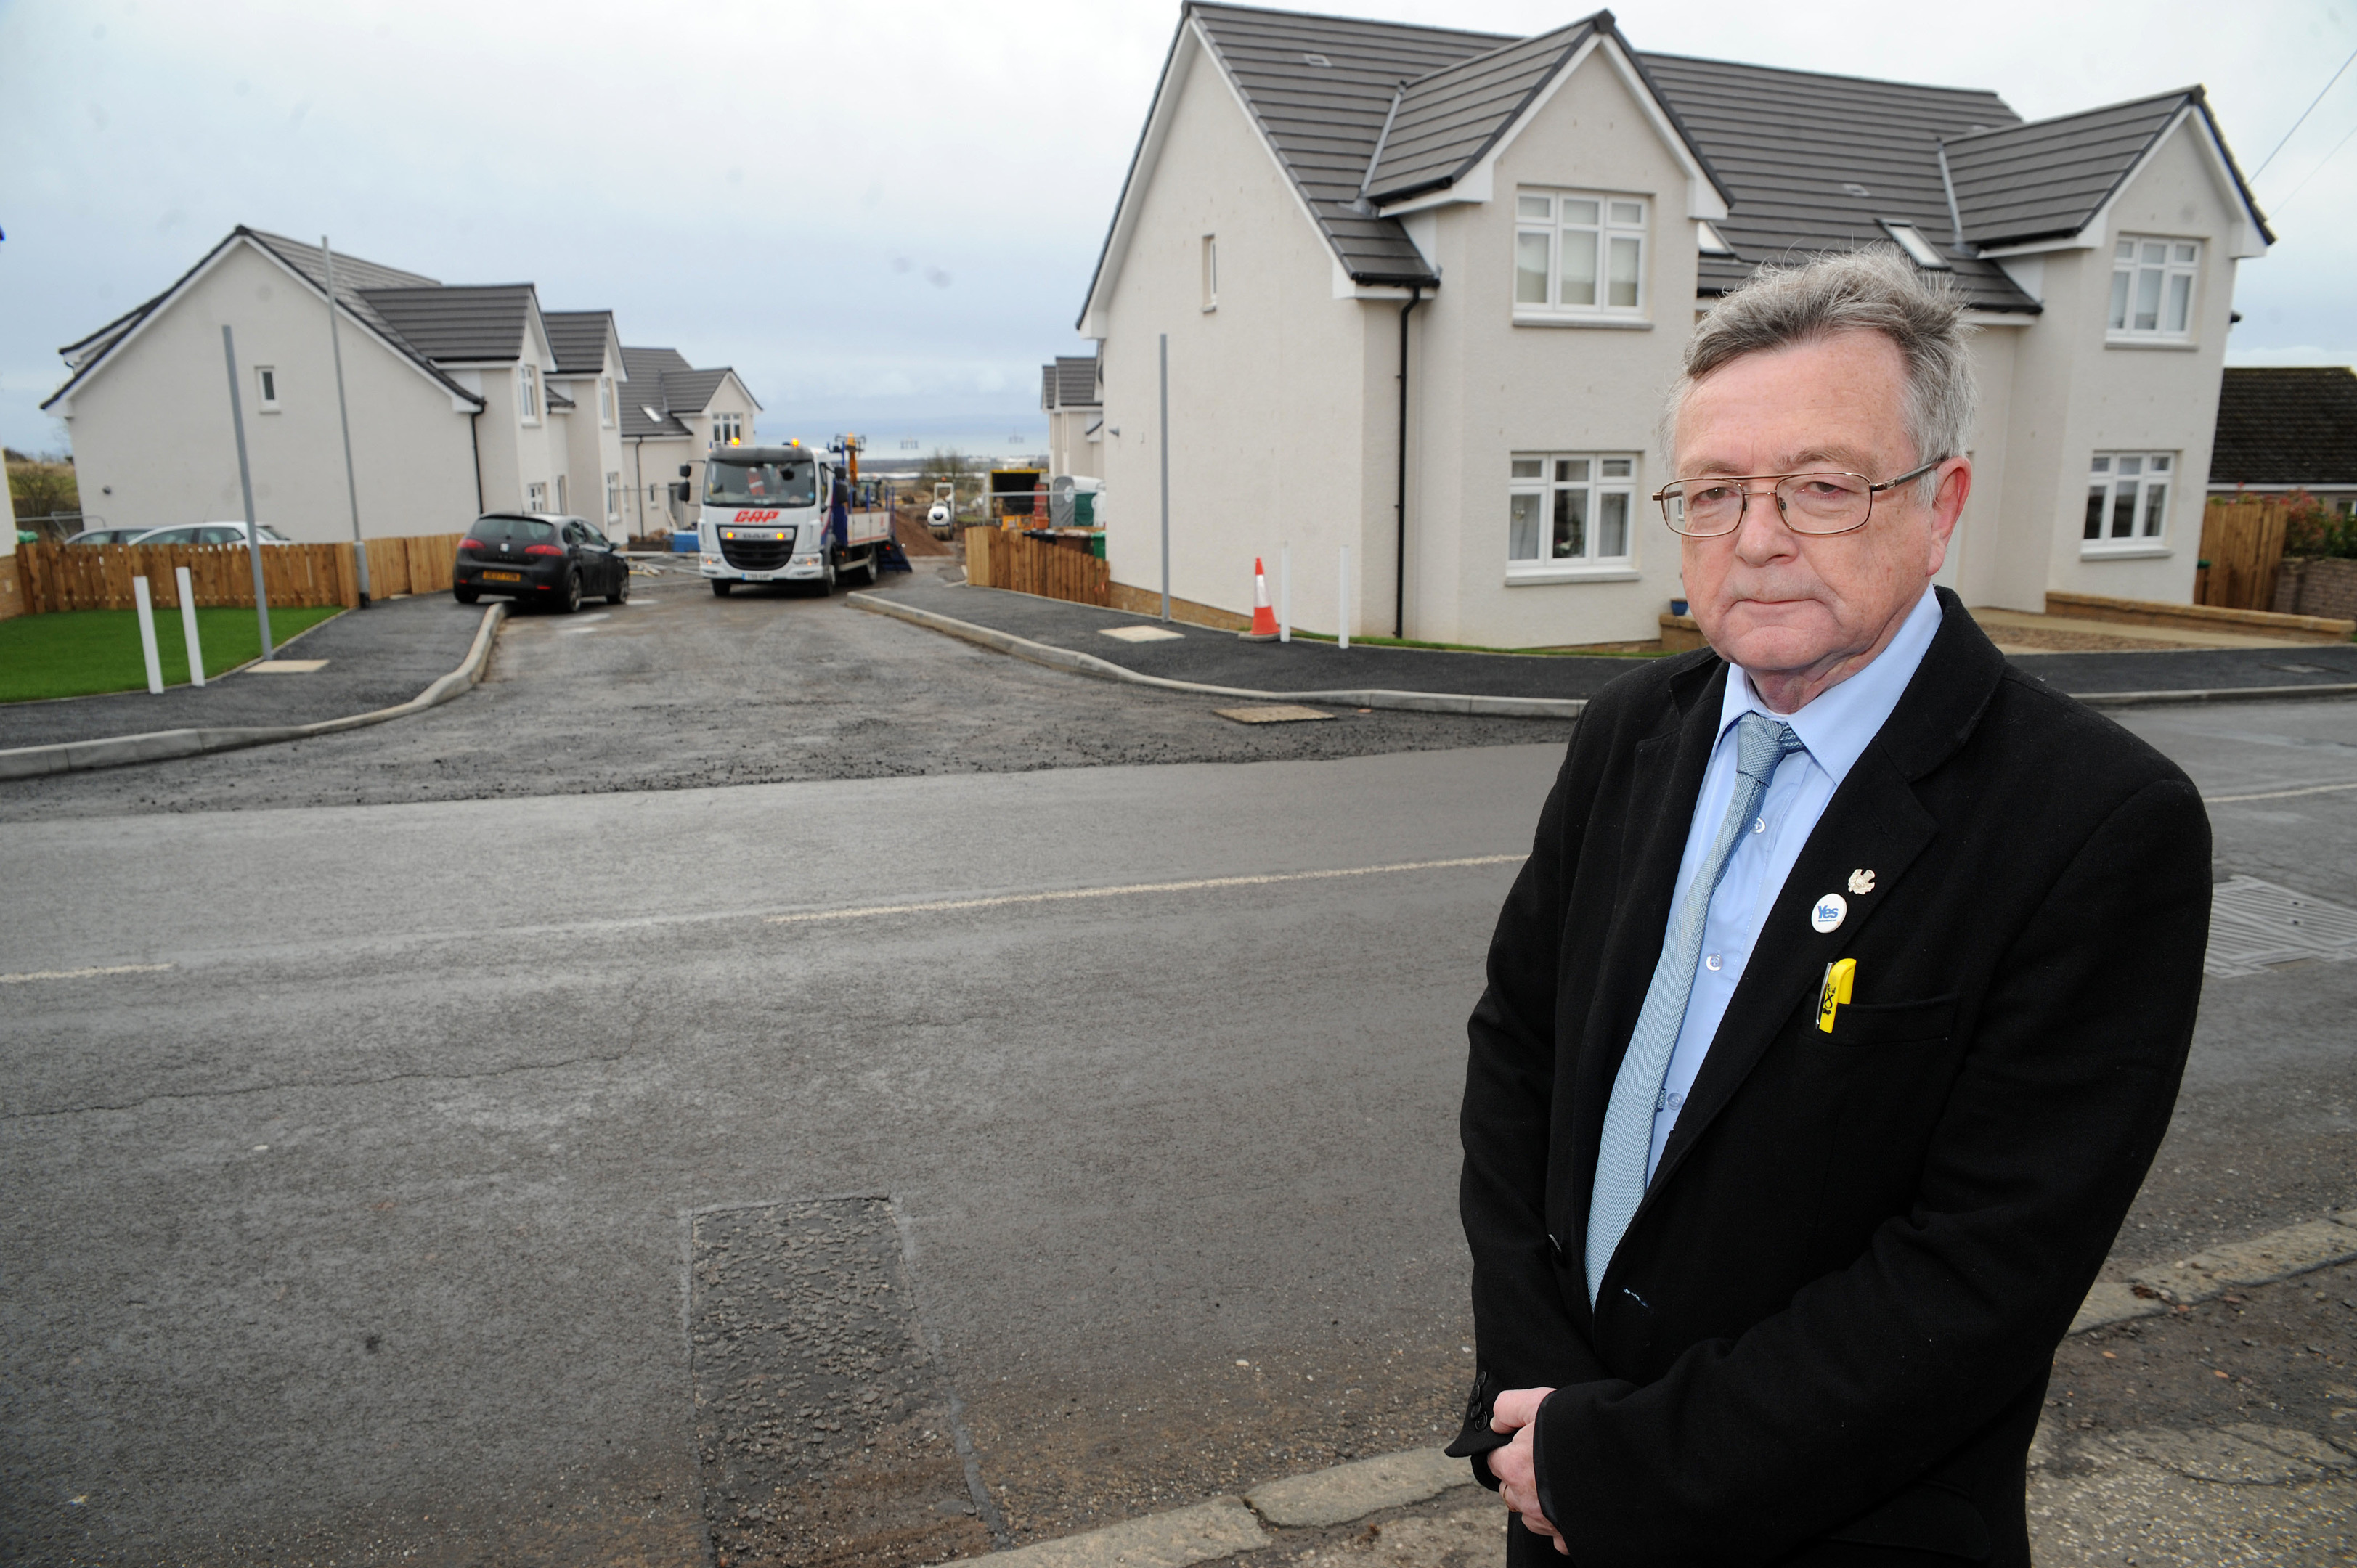 Councillor Alexander claims the council paid over the odds